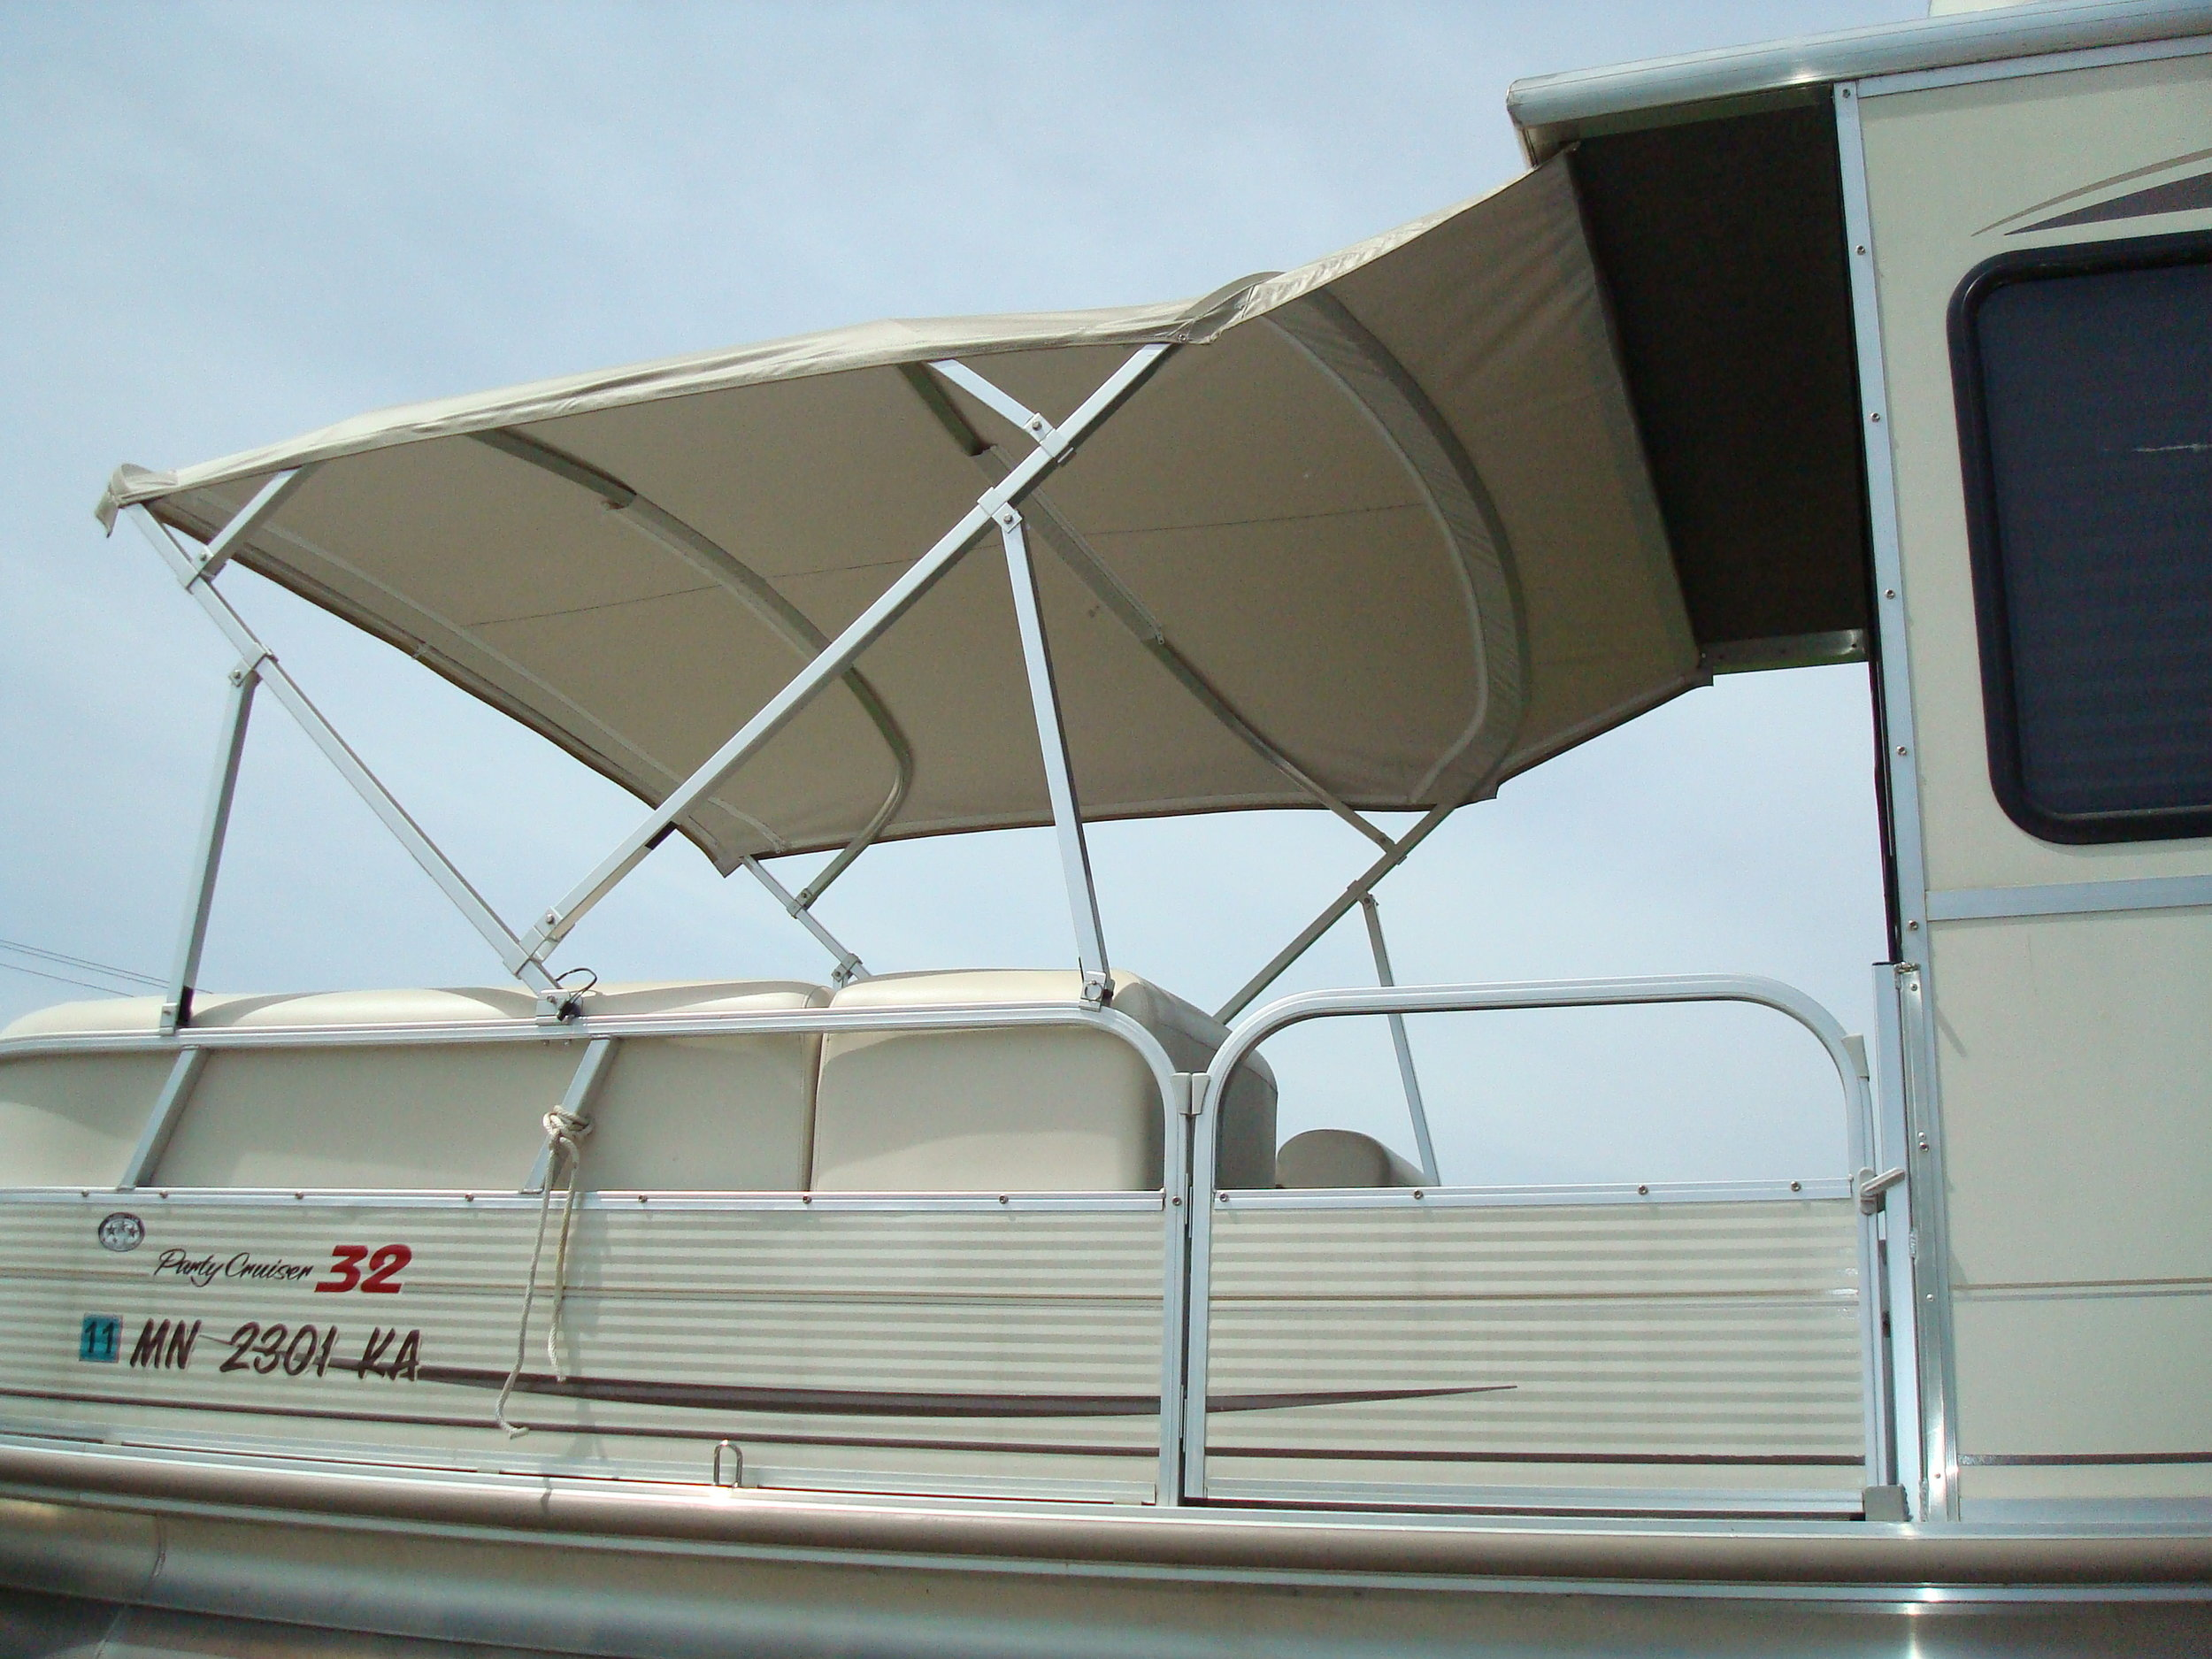 Custom Top Pontoon.JPG